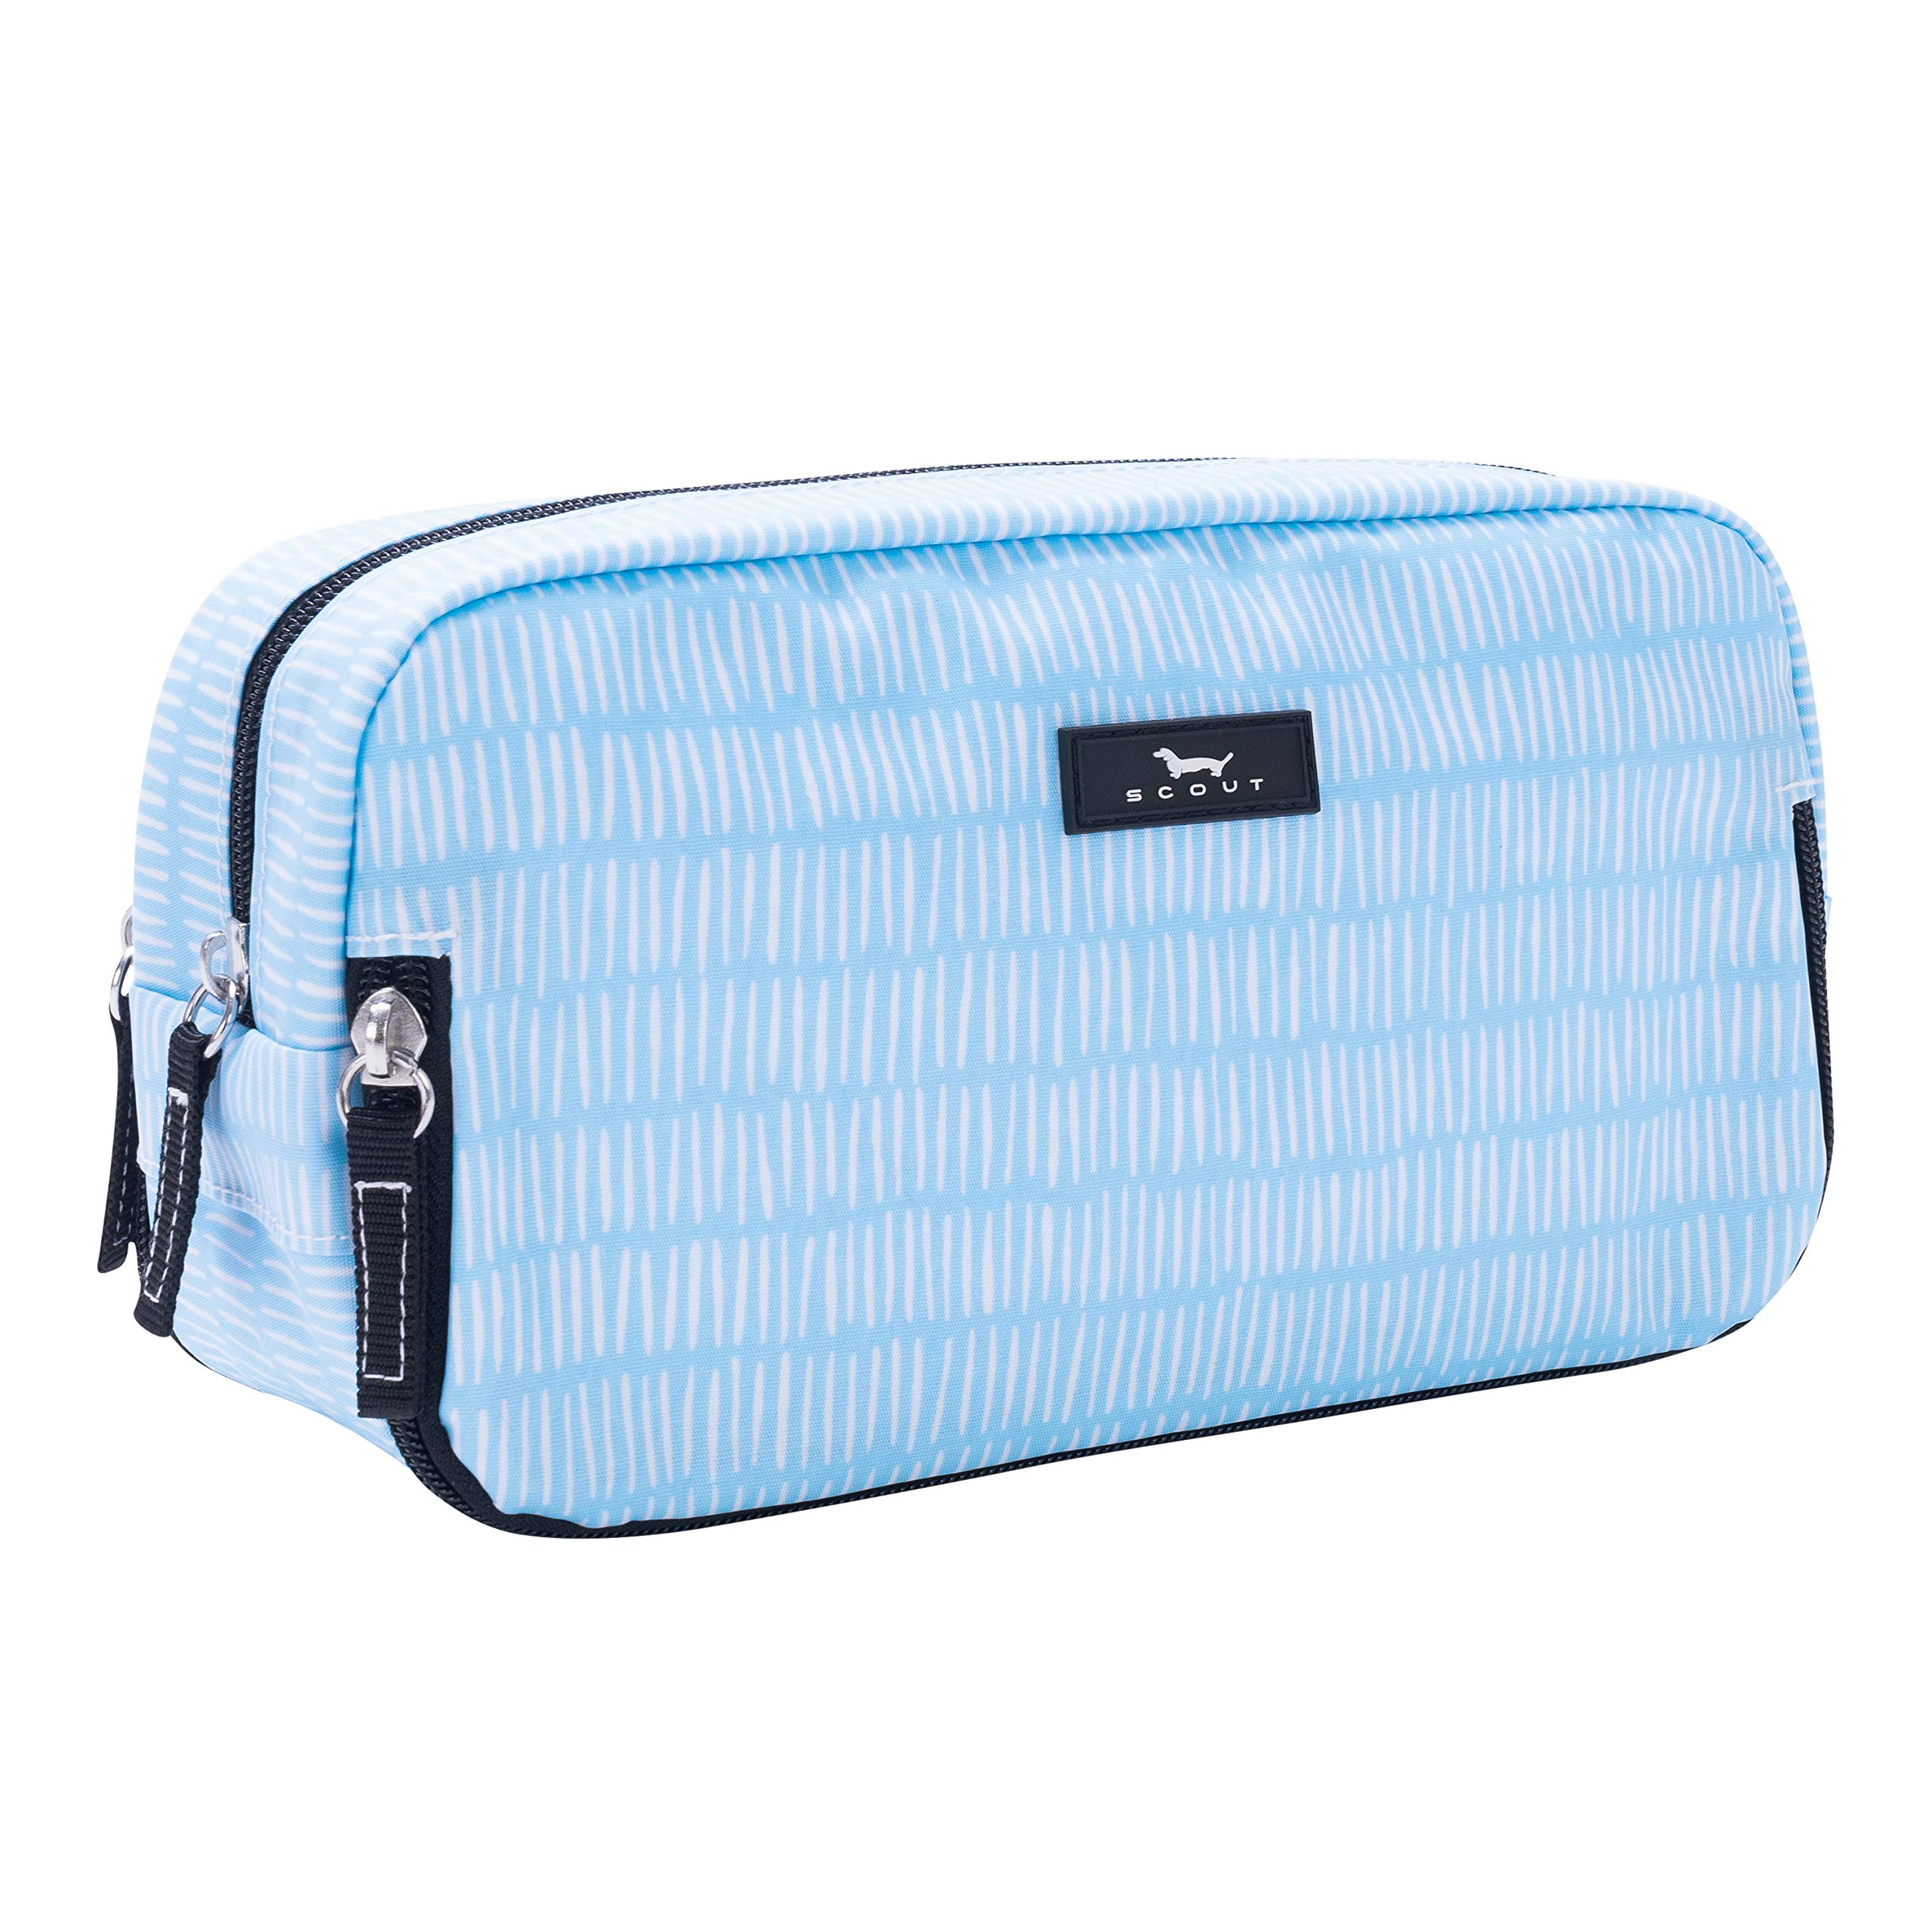 SCOUT 3-Way Bag, Toiletry & Cosmetic Multi Compartment Travel Organizer, 3 Zipper Compartments, Water Resistant, Tally Girl